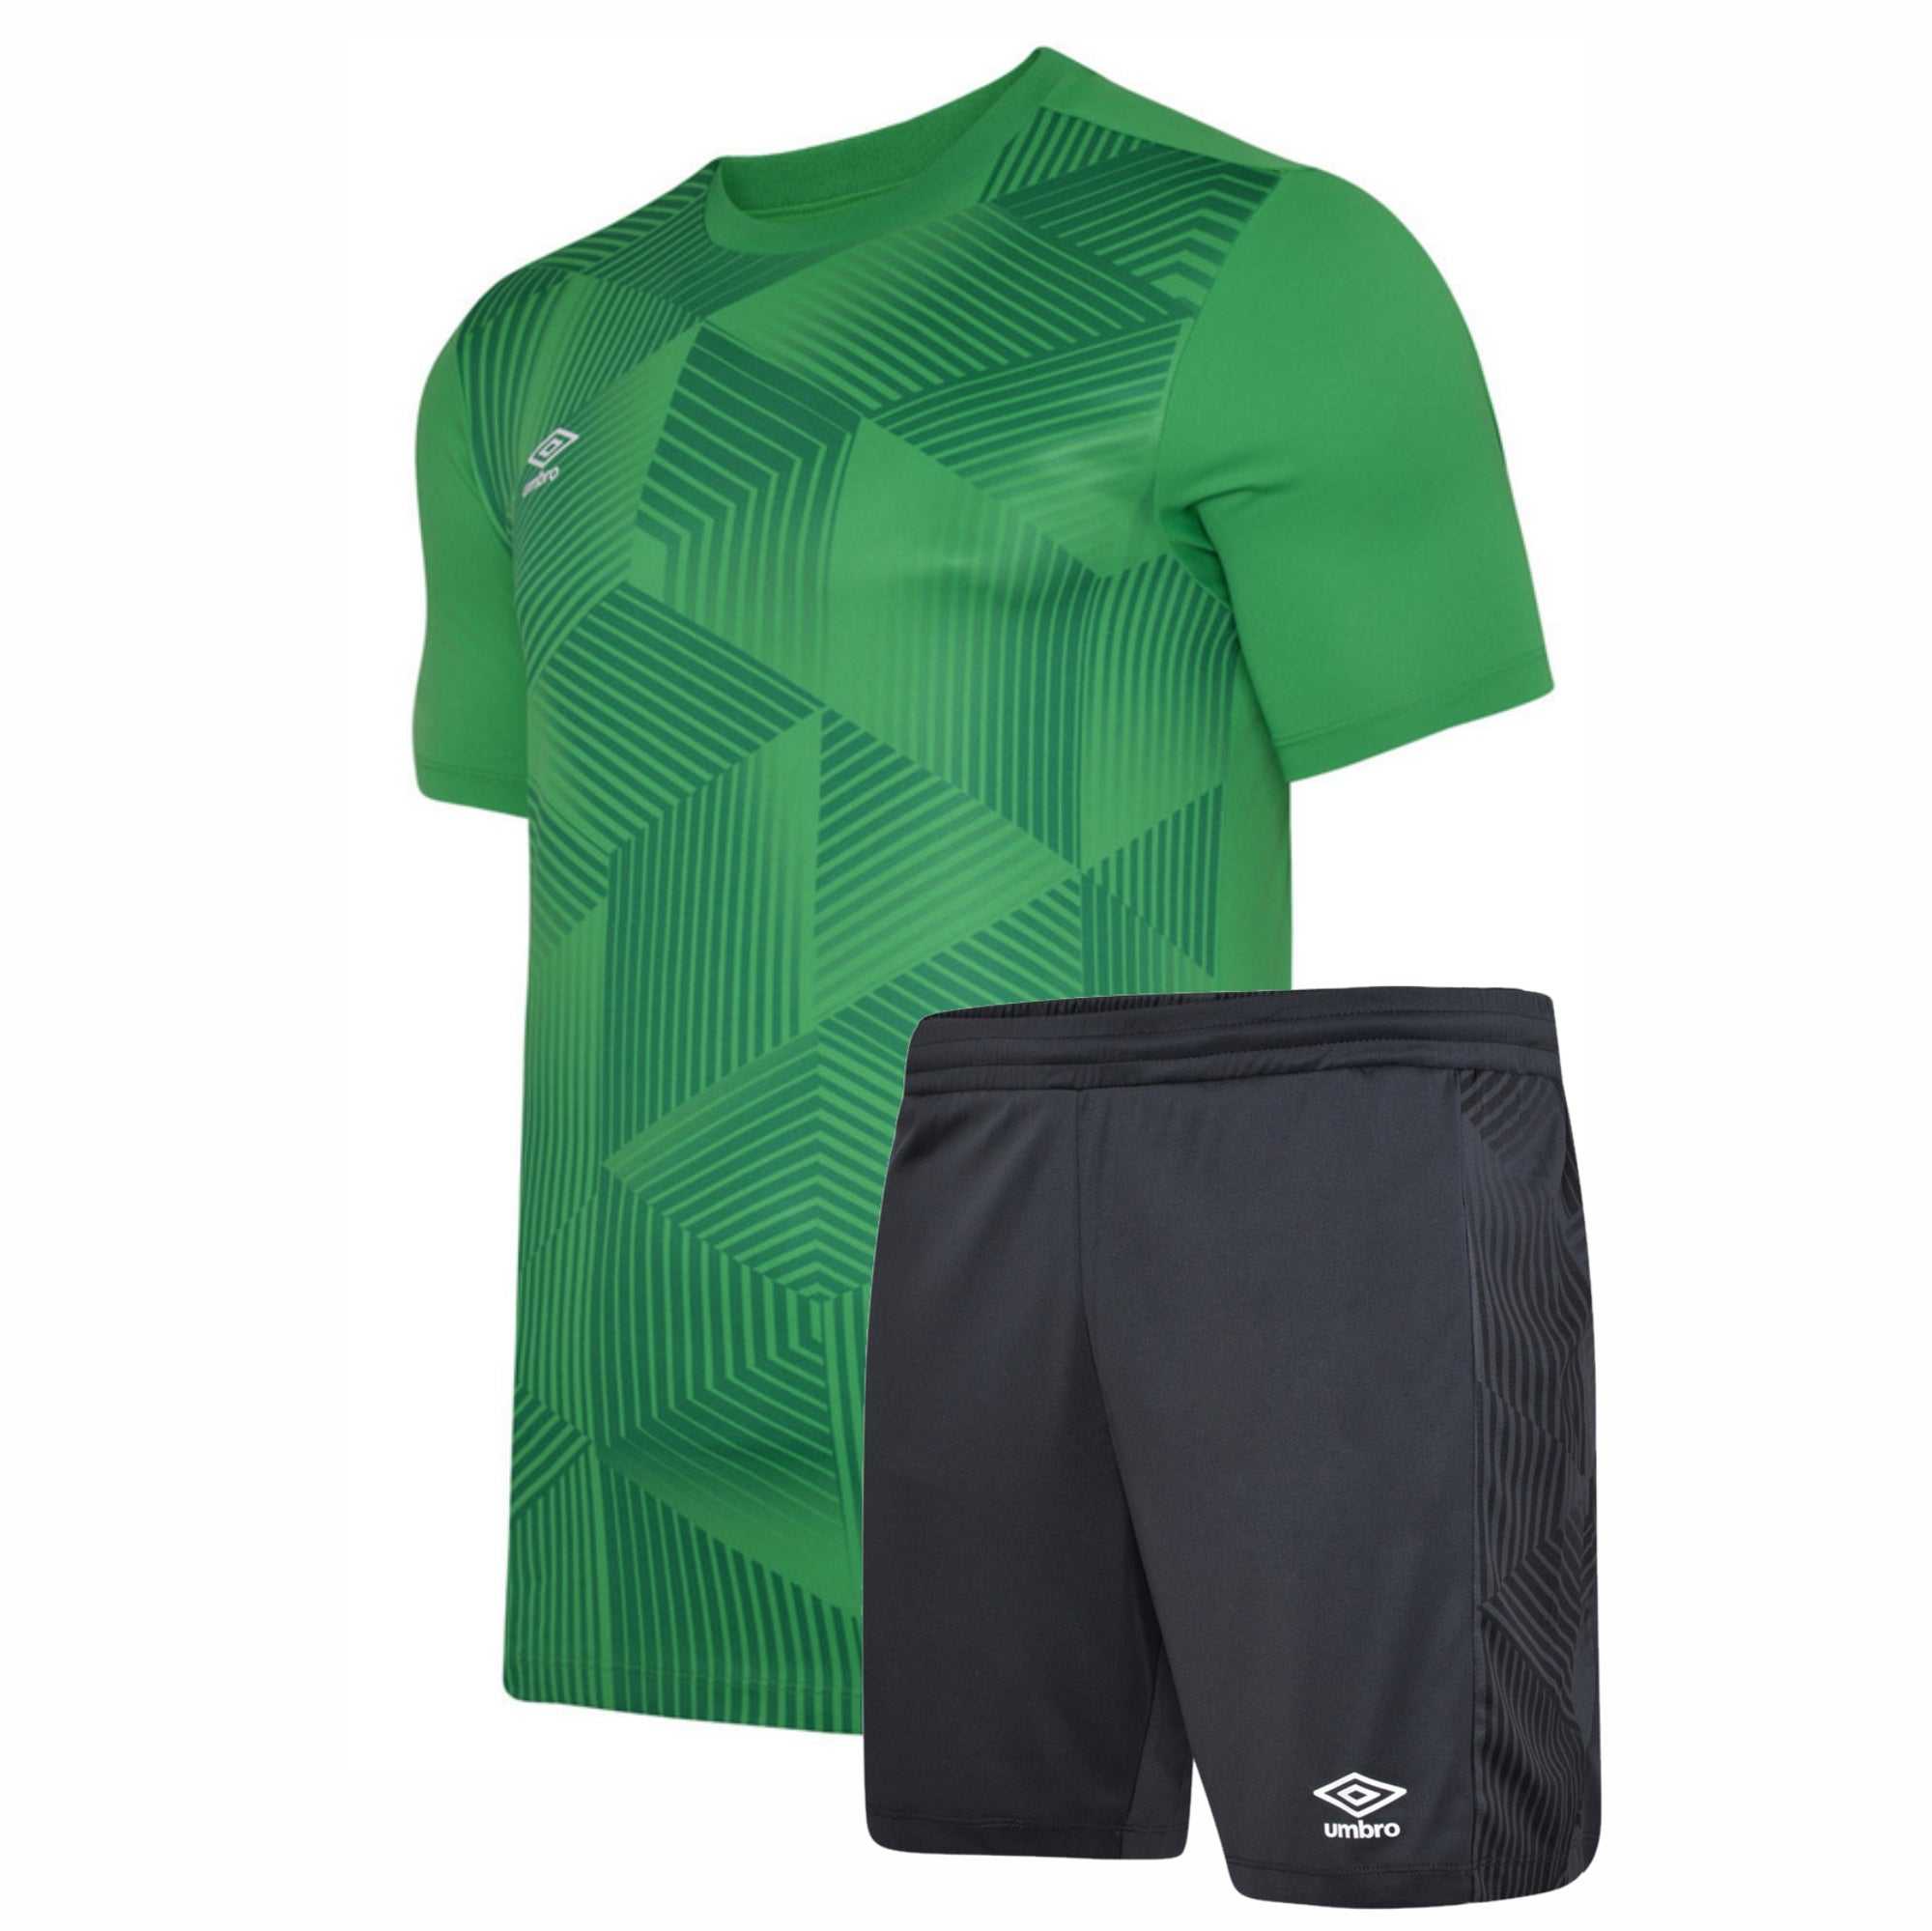 Umbro Maxium Kit Set - Emerald/Black